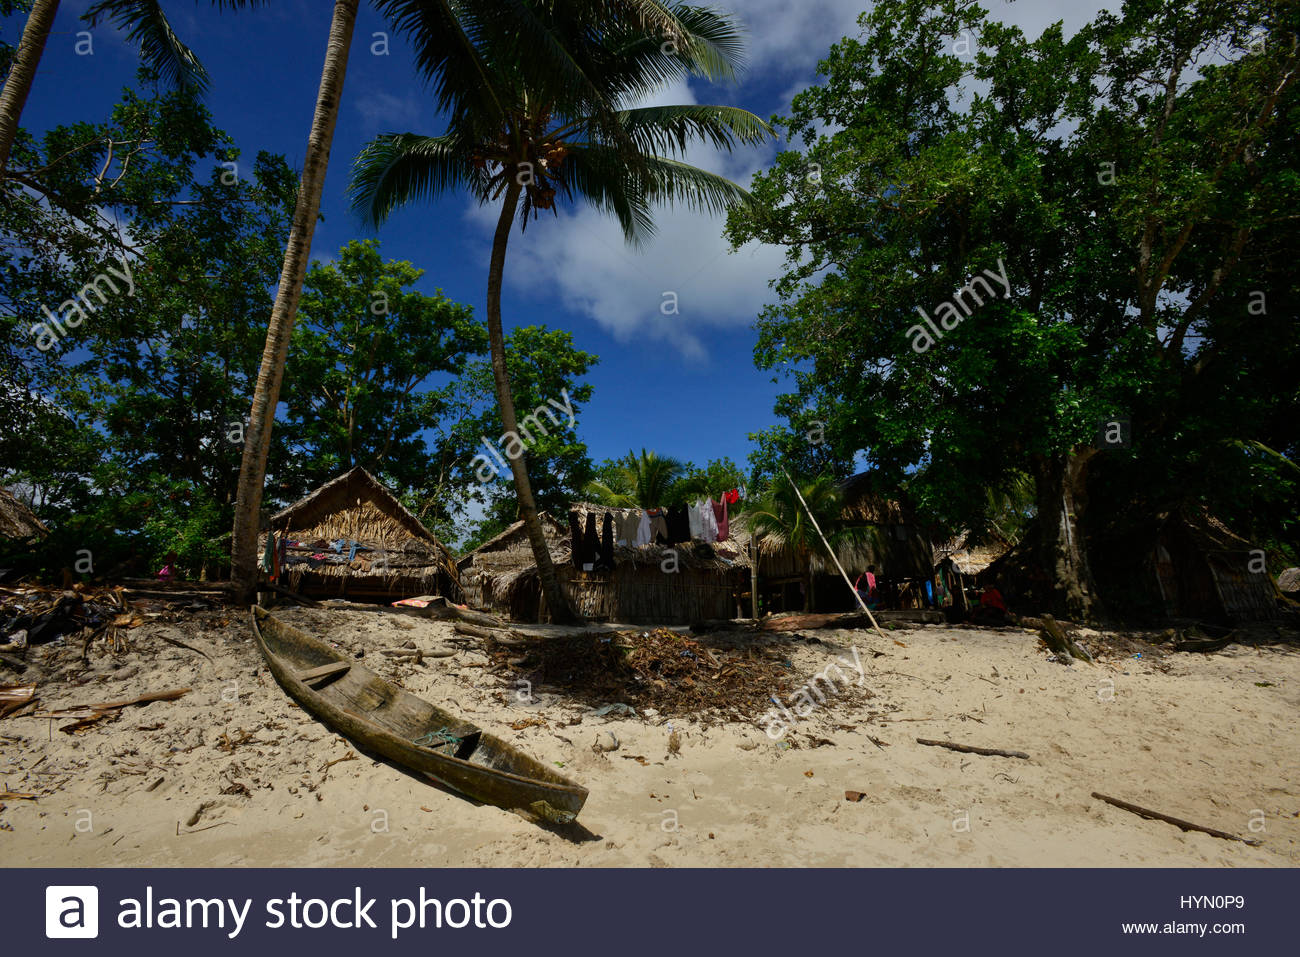 A beached canoe and local housing on a beach on Owaraha Island. - Stock Image